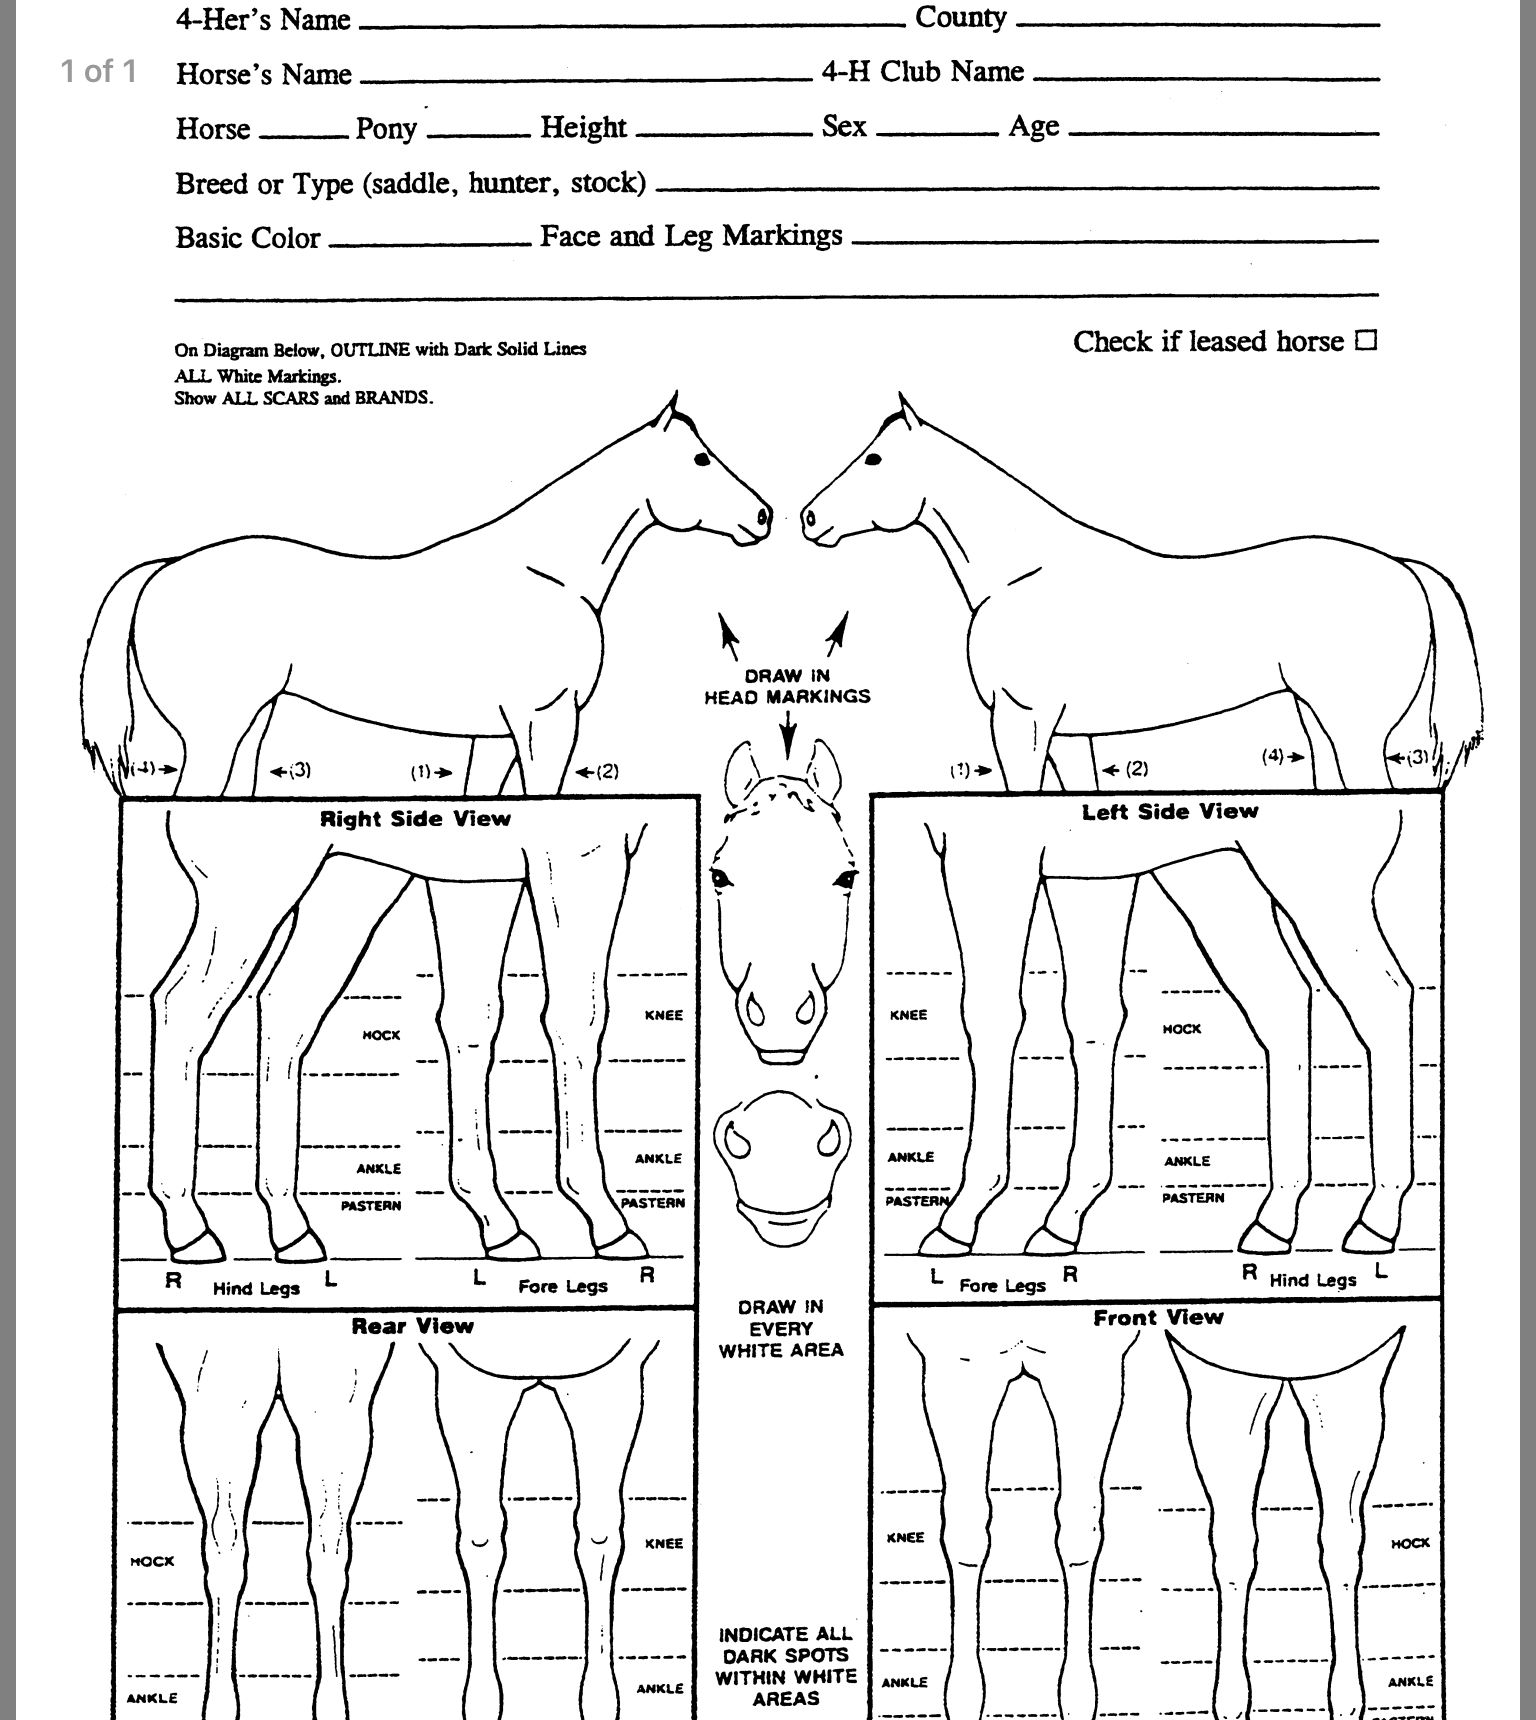 Pin By Natalie Smith On Horse Work Animal Science Horses Chart [ 1720 x 1536 Pixel ]